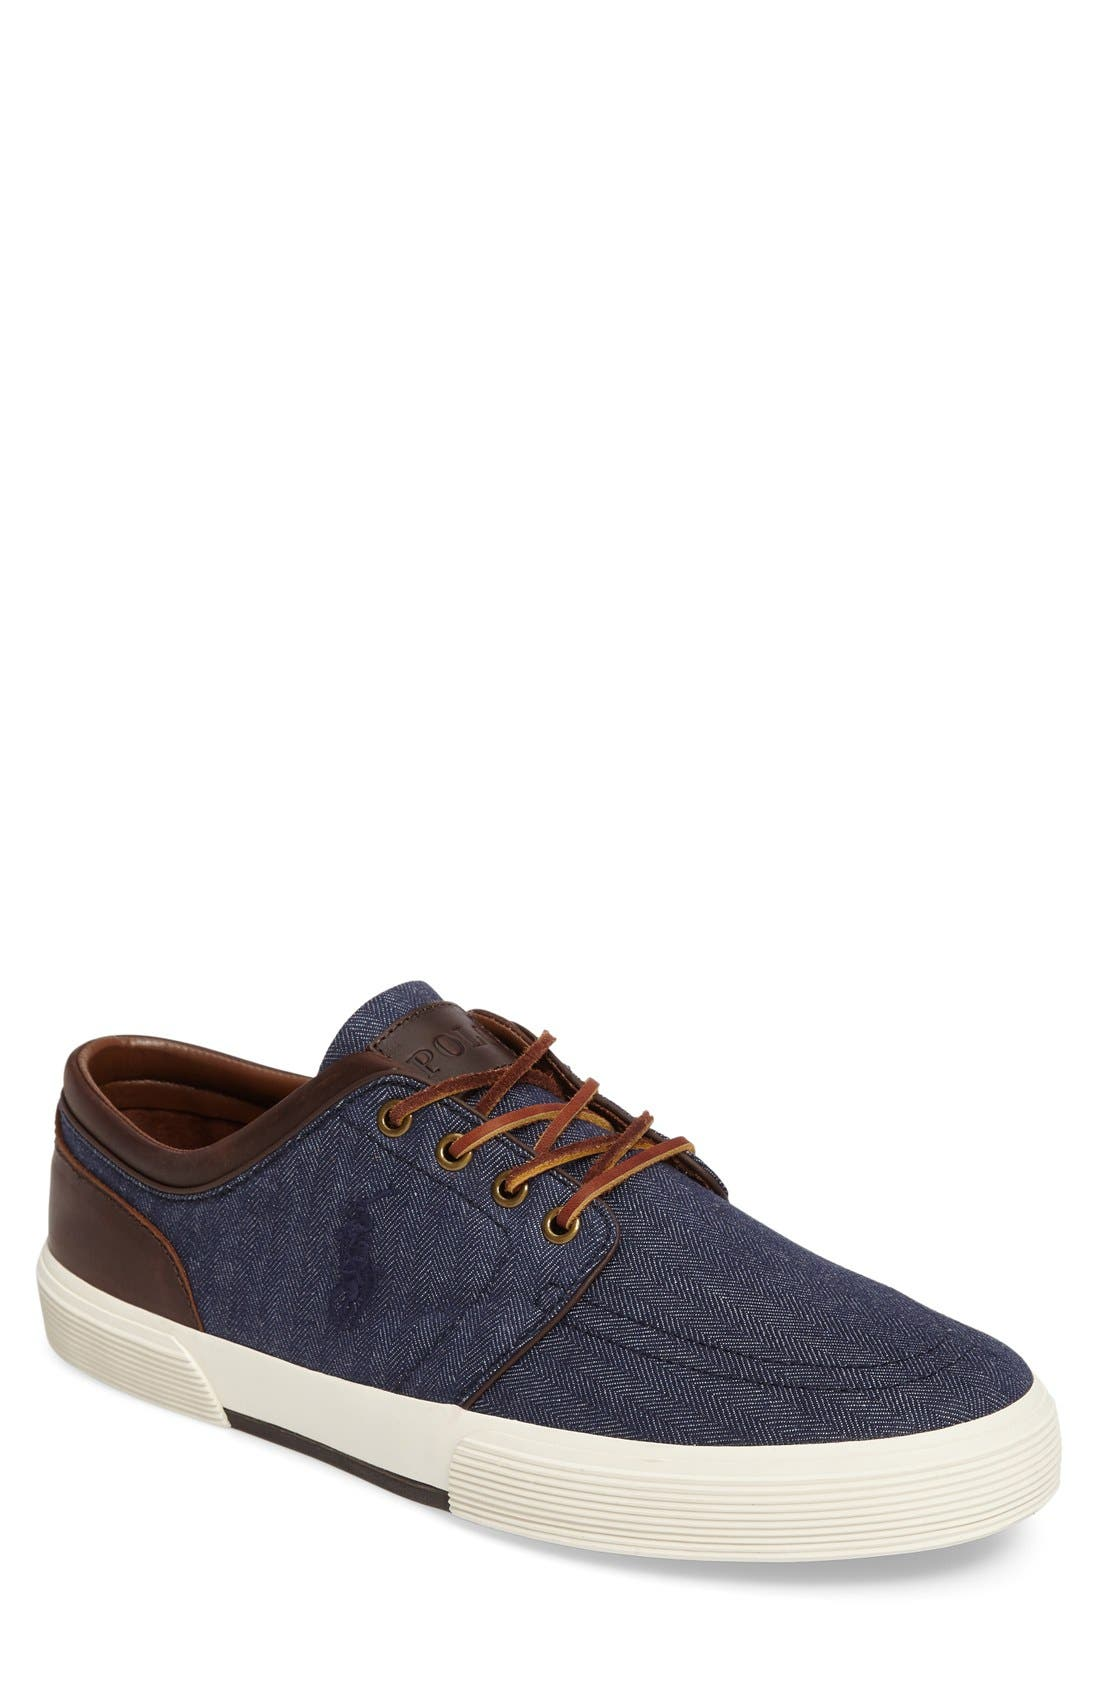 Main Image - Polo Ralph Lauren 'Faxon Low' Sneaker (Men)